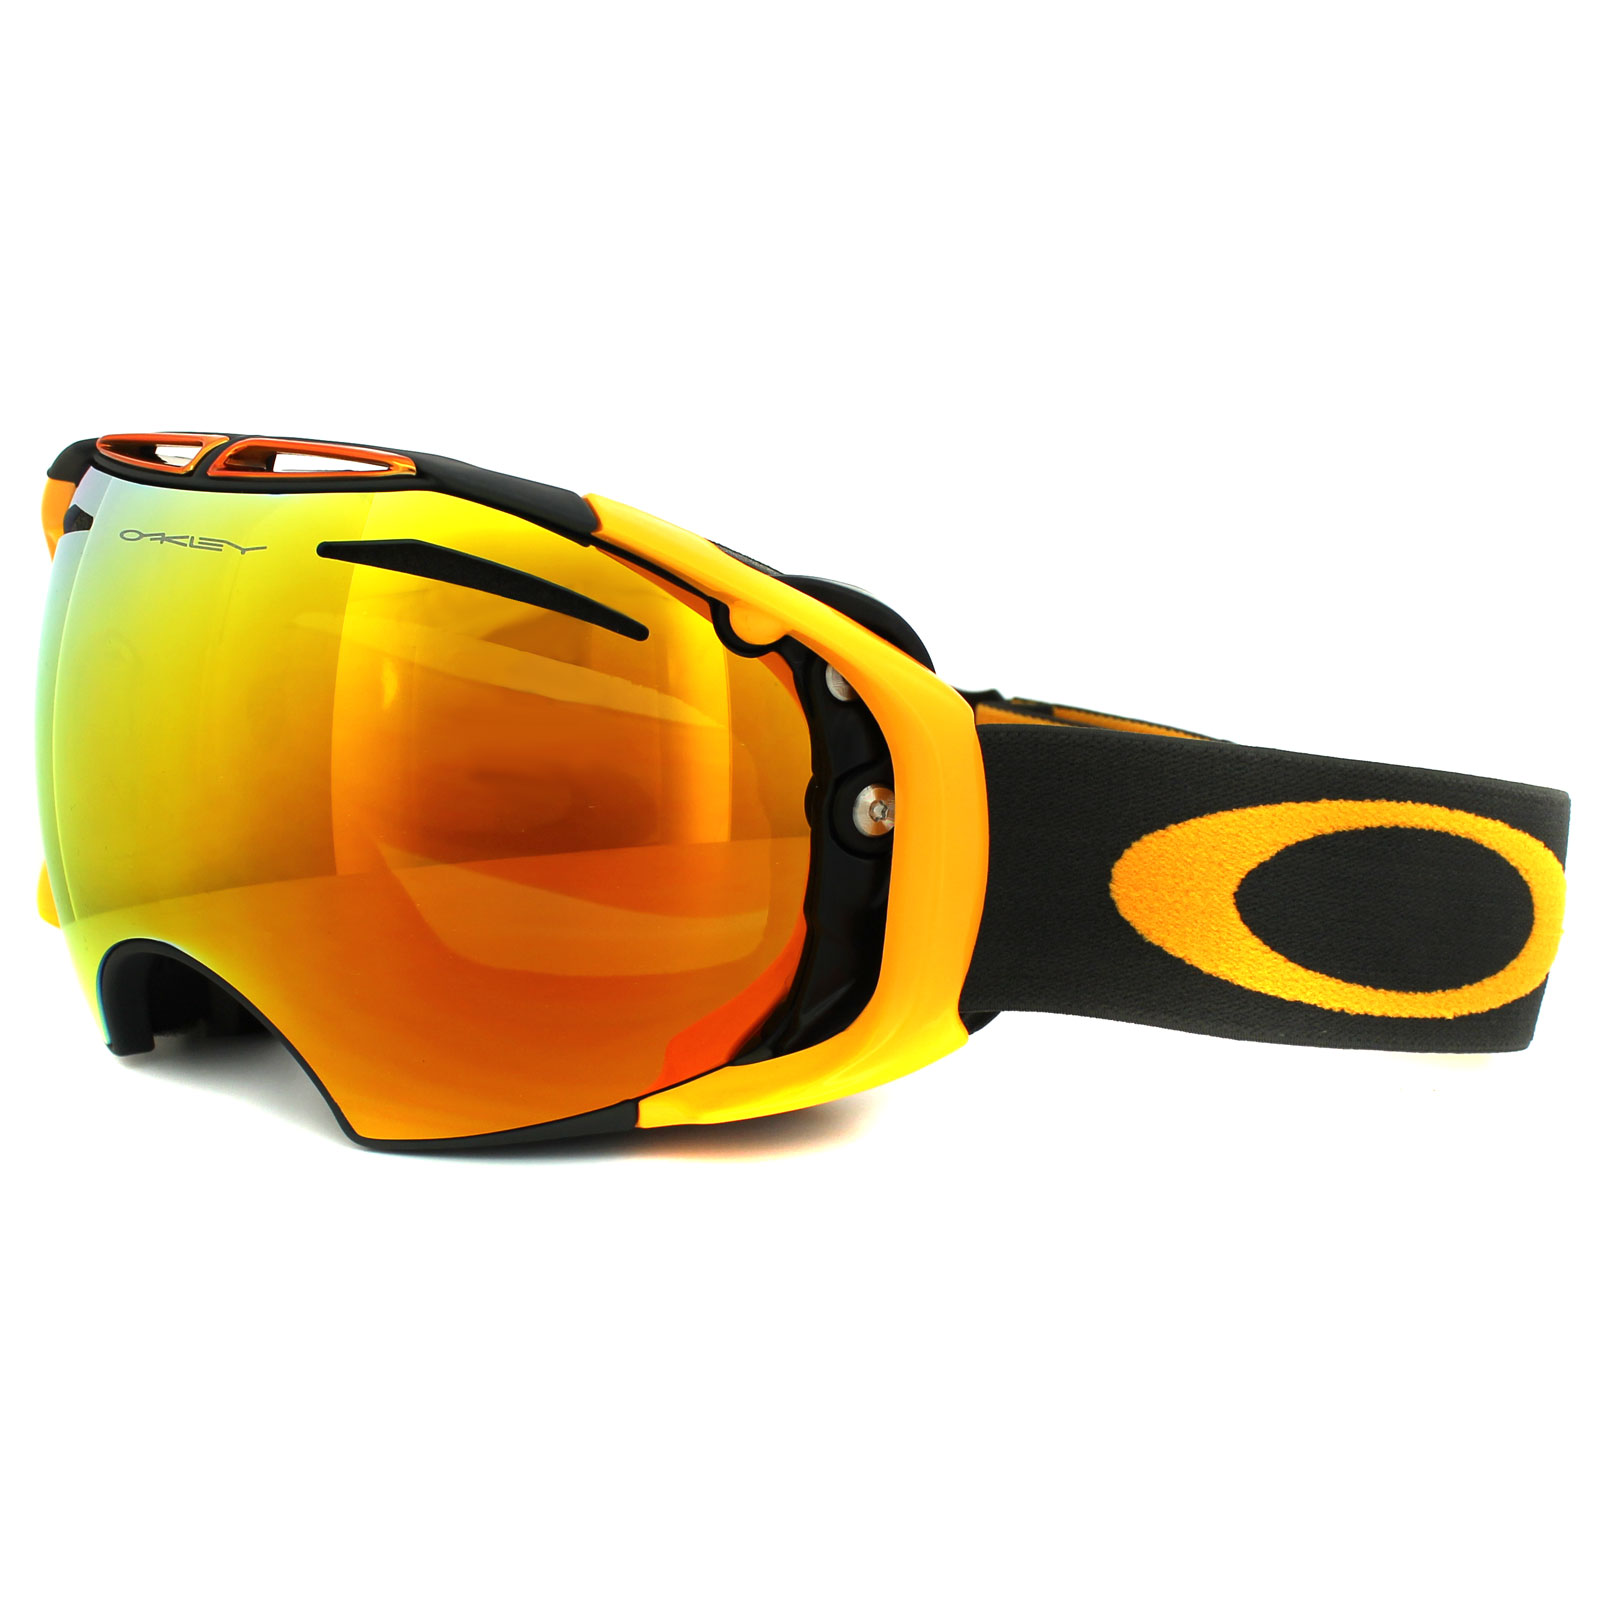 Cheap Oakley Airbrake Goggles Discounted Sunglasses